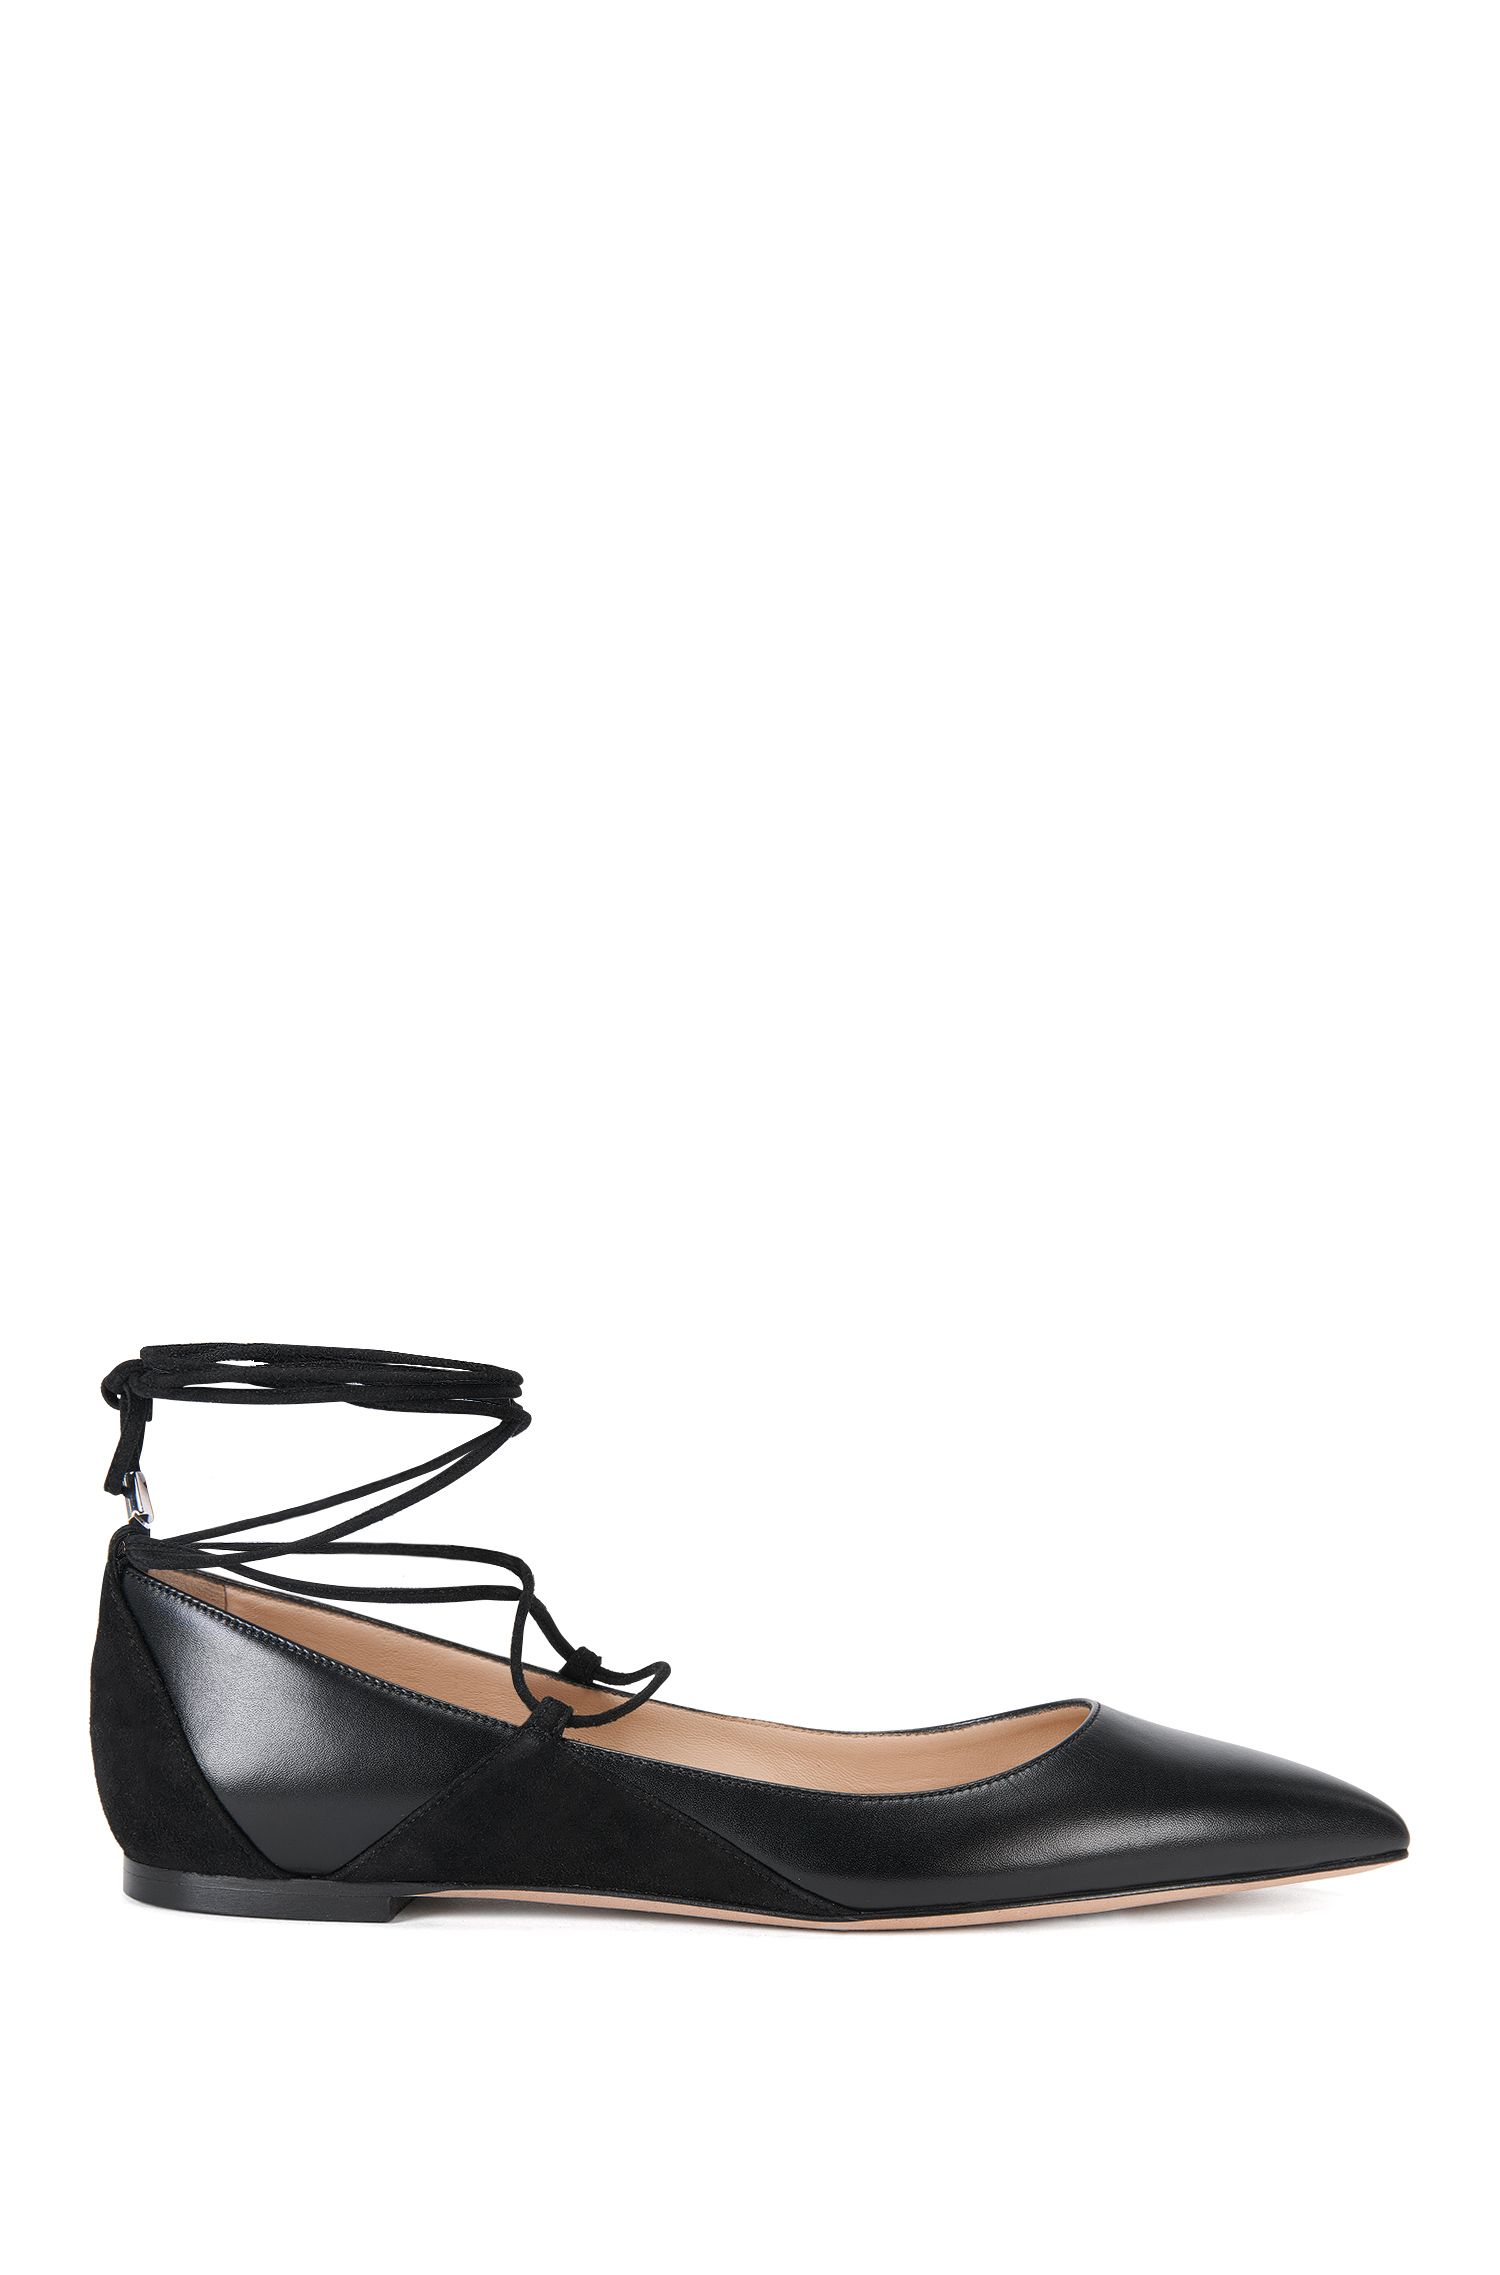 Ballerina flats in leather with lace-up detail by HUGO Woman